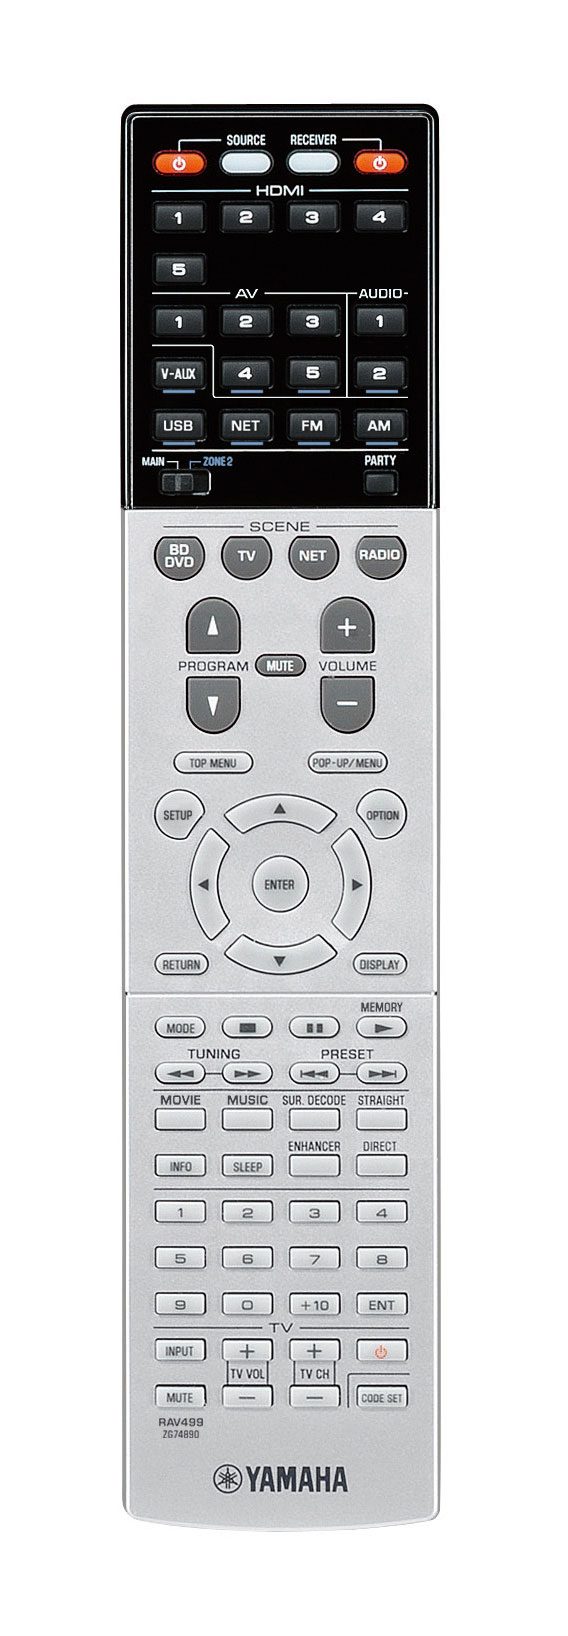 Yamaha RX-S600 remote control